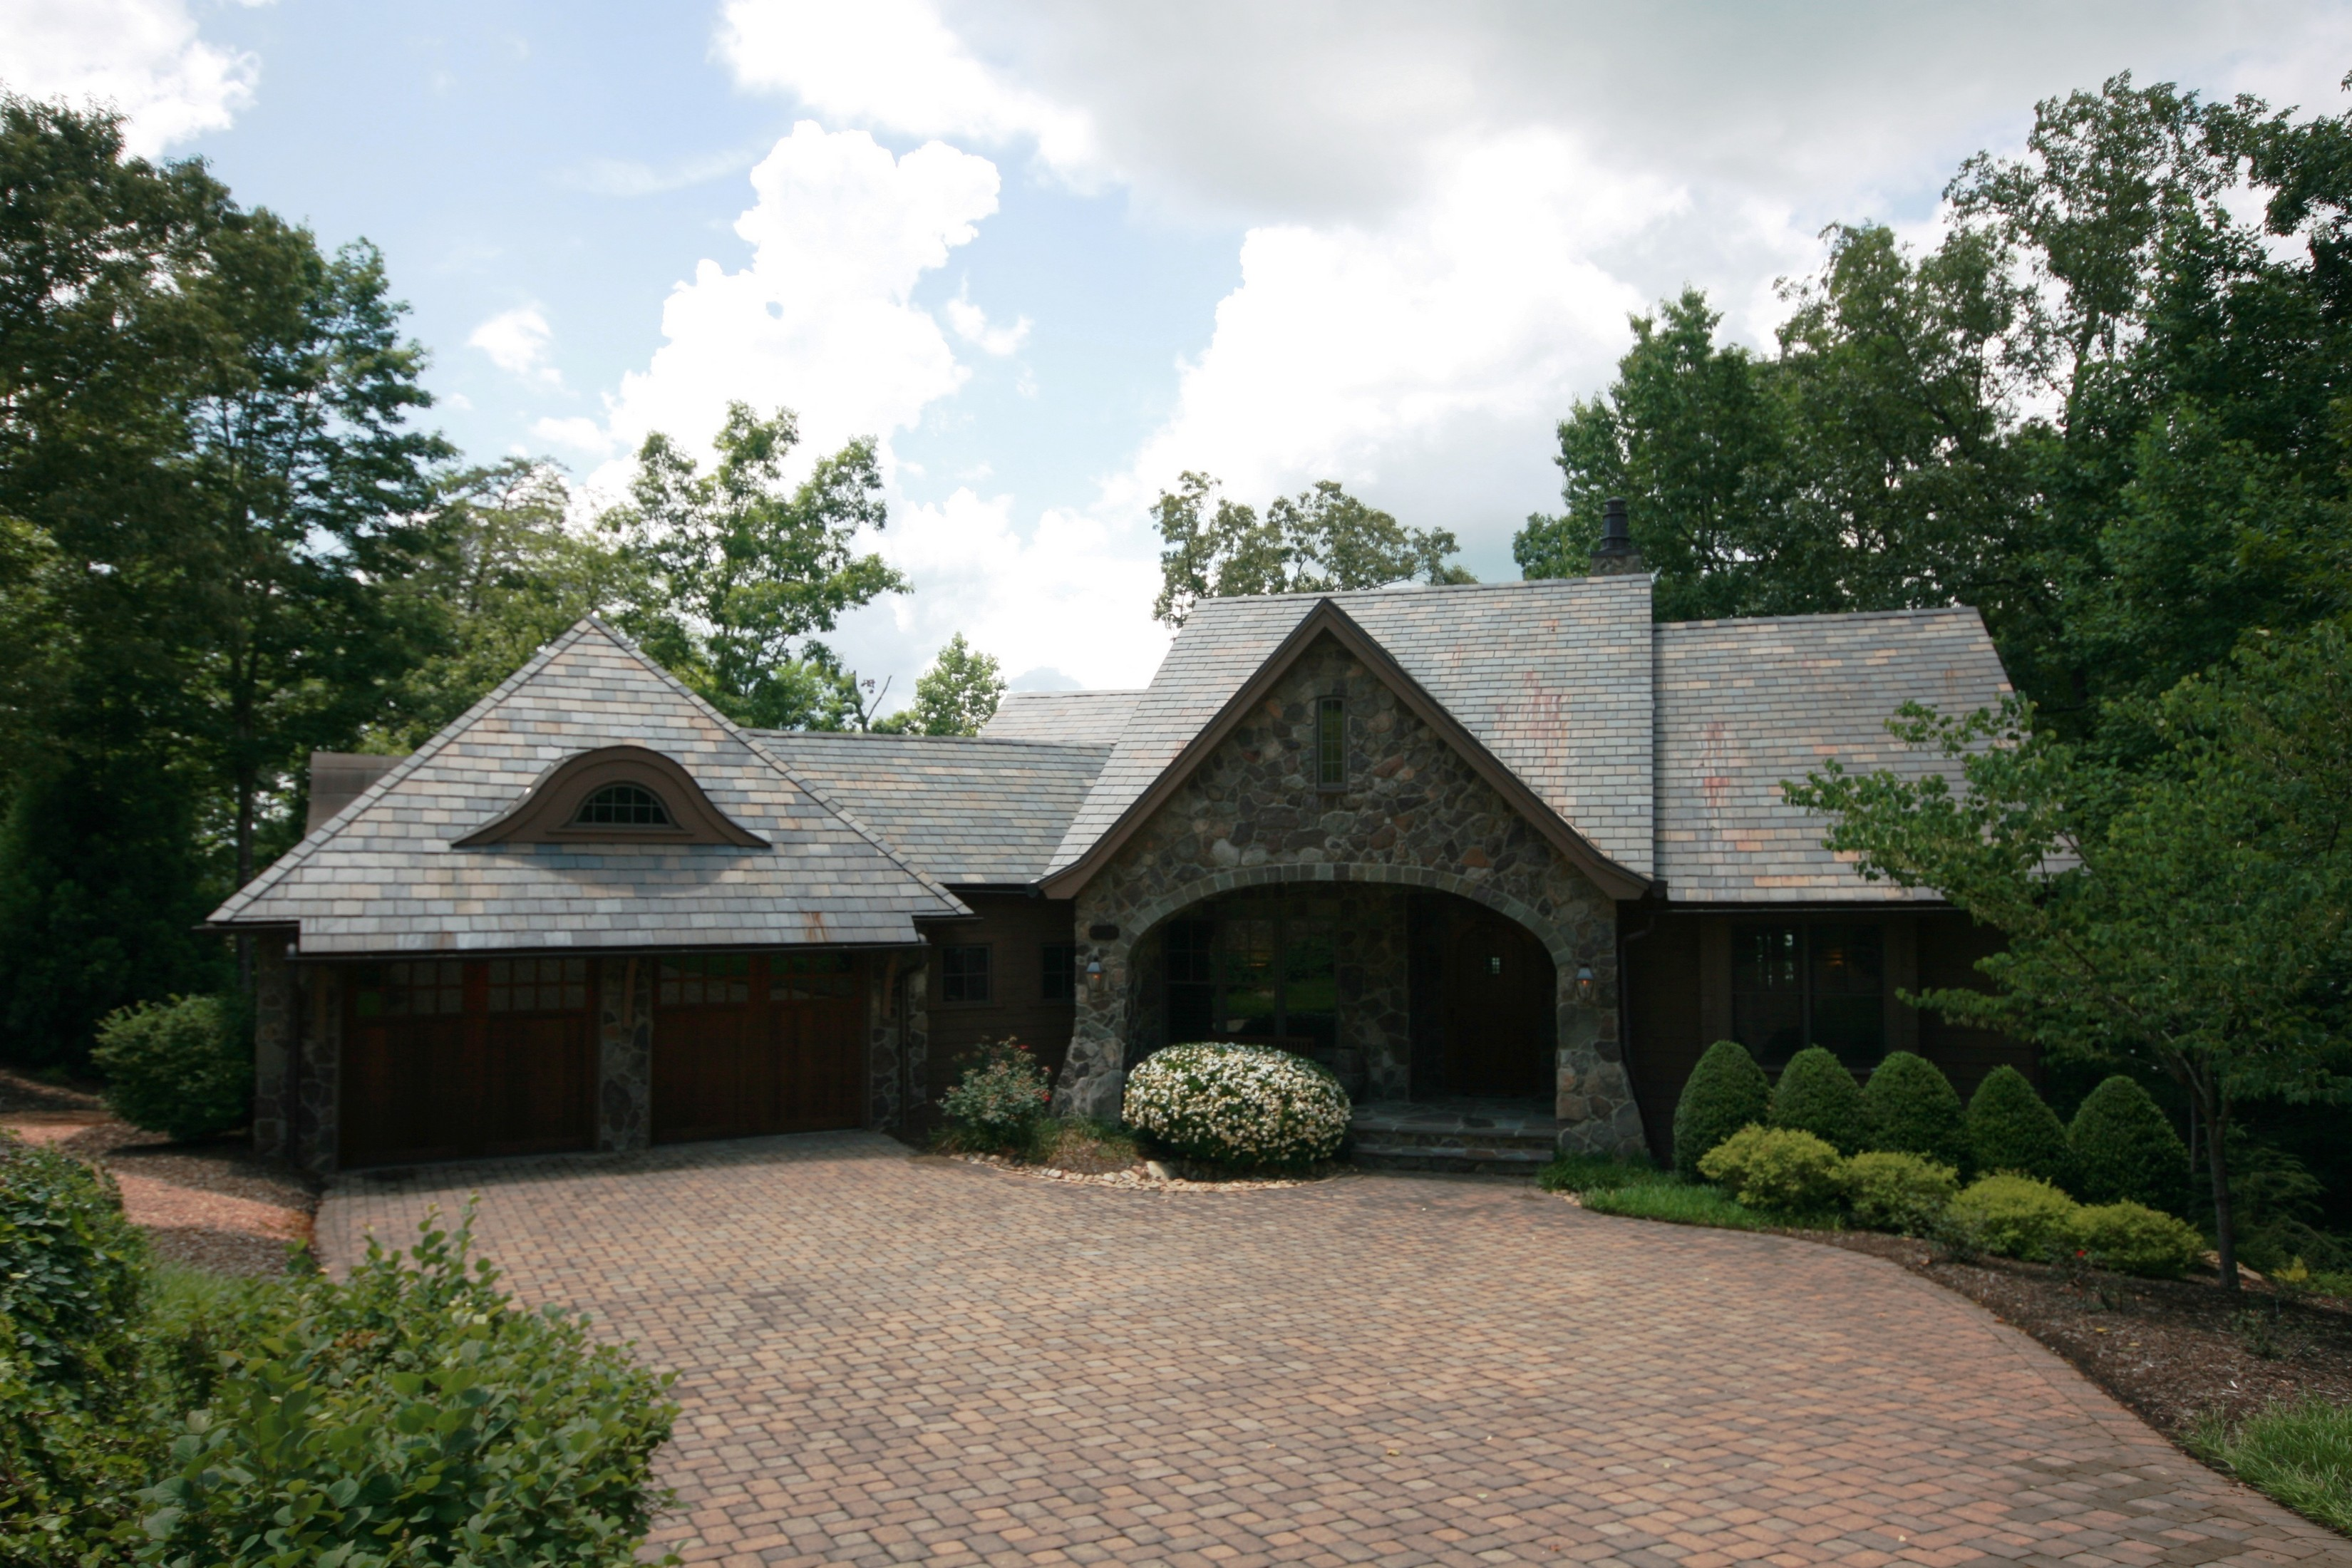 Single Family Home for Sale at Turnkey Living in a Dynamic, Professionally Decorated Lakefront Home 501 Lake Vista Way The Cliffs At Keowee Springs, Six Mile, South Carolina, 29682 United States